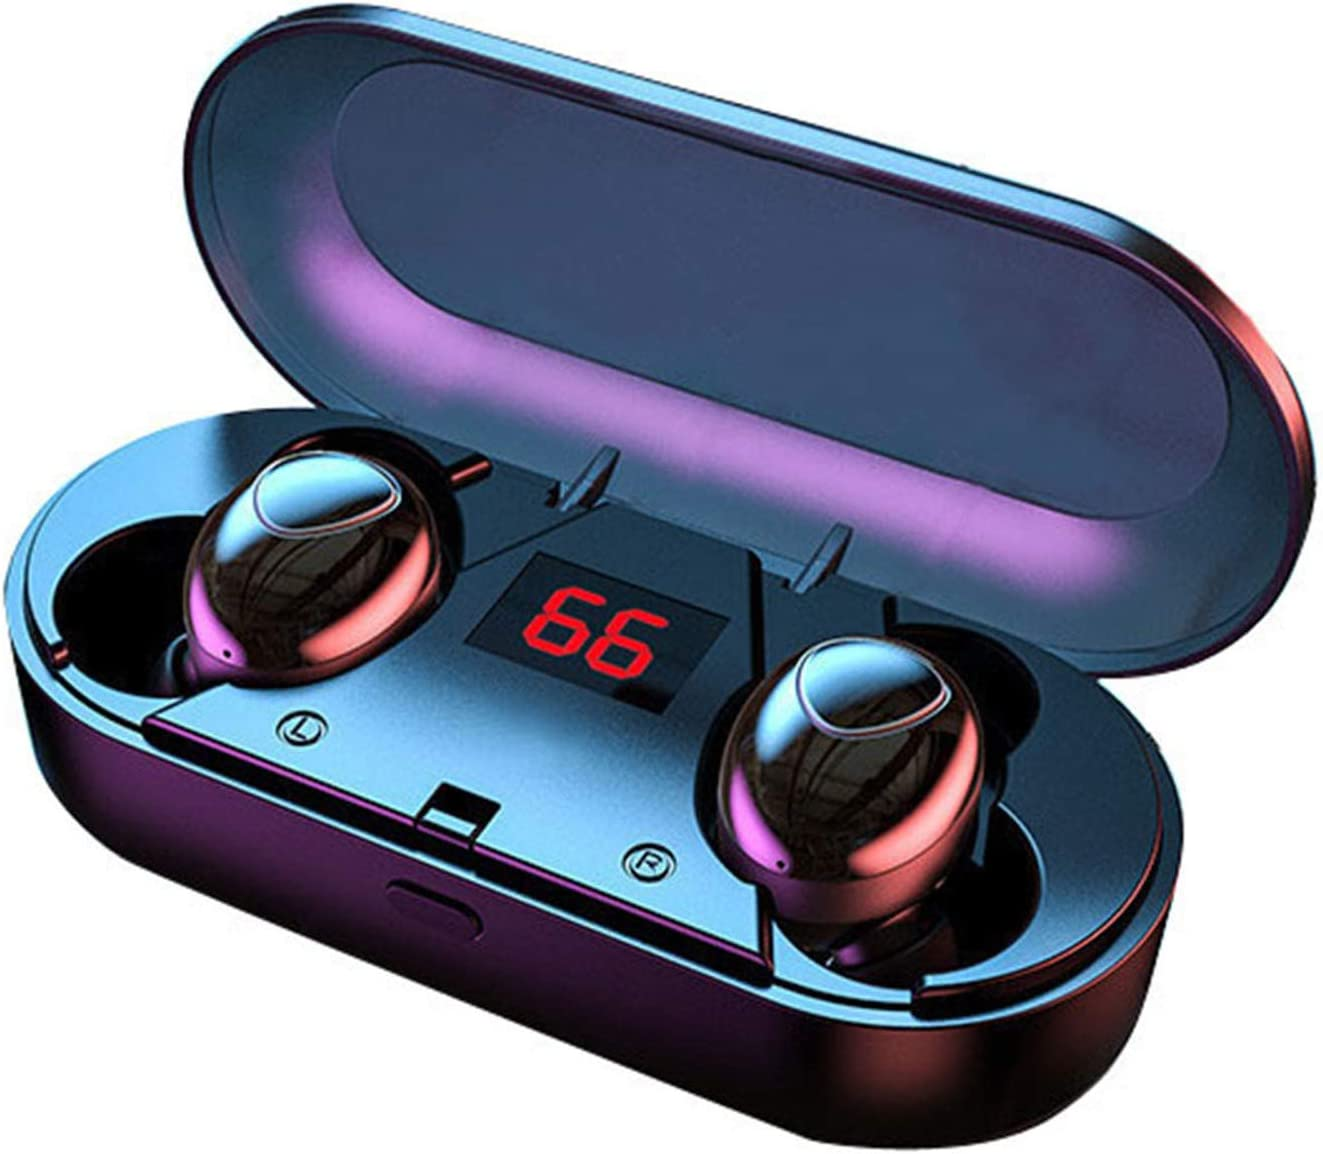 Sporthomer Wireless Headphones Bluetooth 5.1 with LED Display Charging Case, CVC 8.0 Noise Cancelling Headphones, TWS IPX7 Waterproof Bluetooth Earbuds Compatible with iPhone iPad Samsung Android